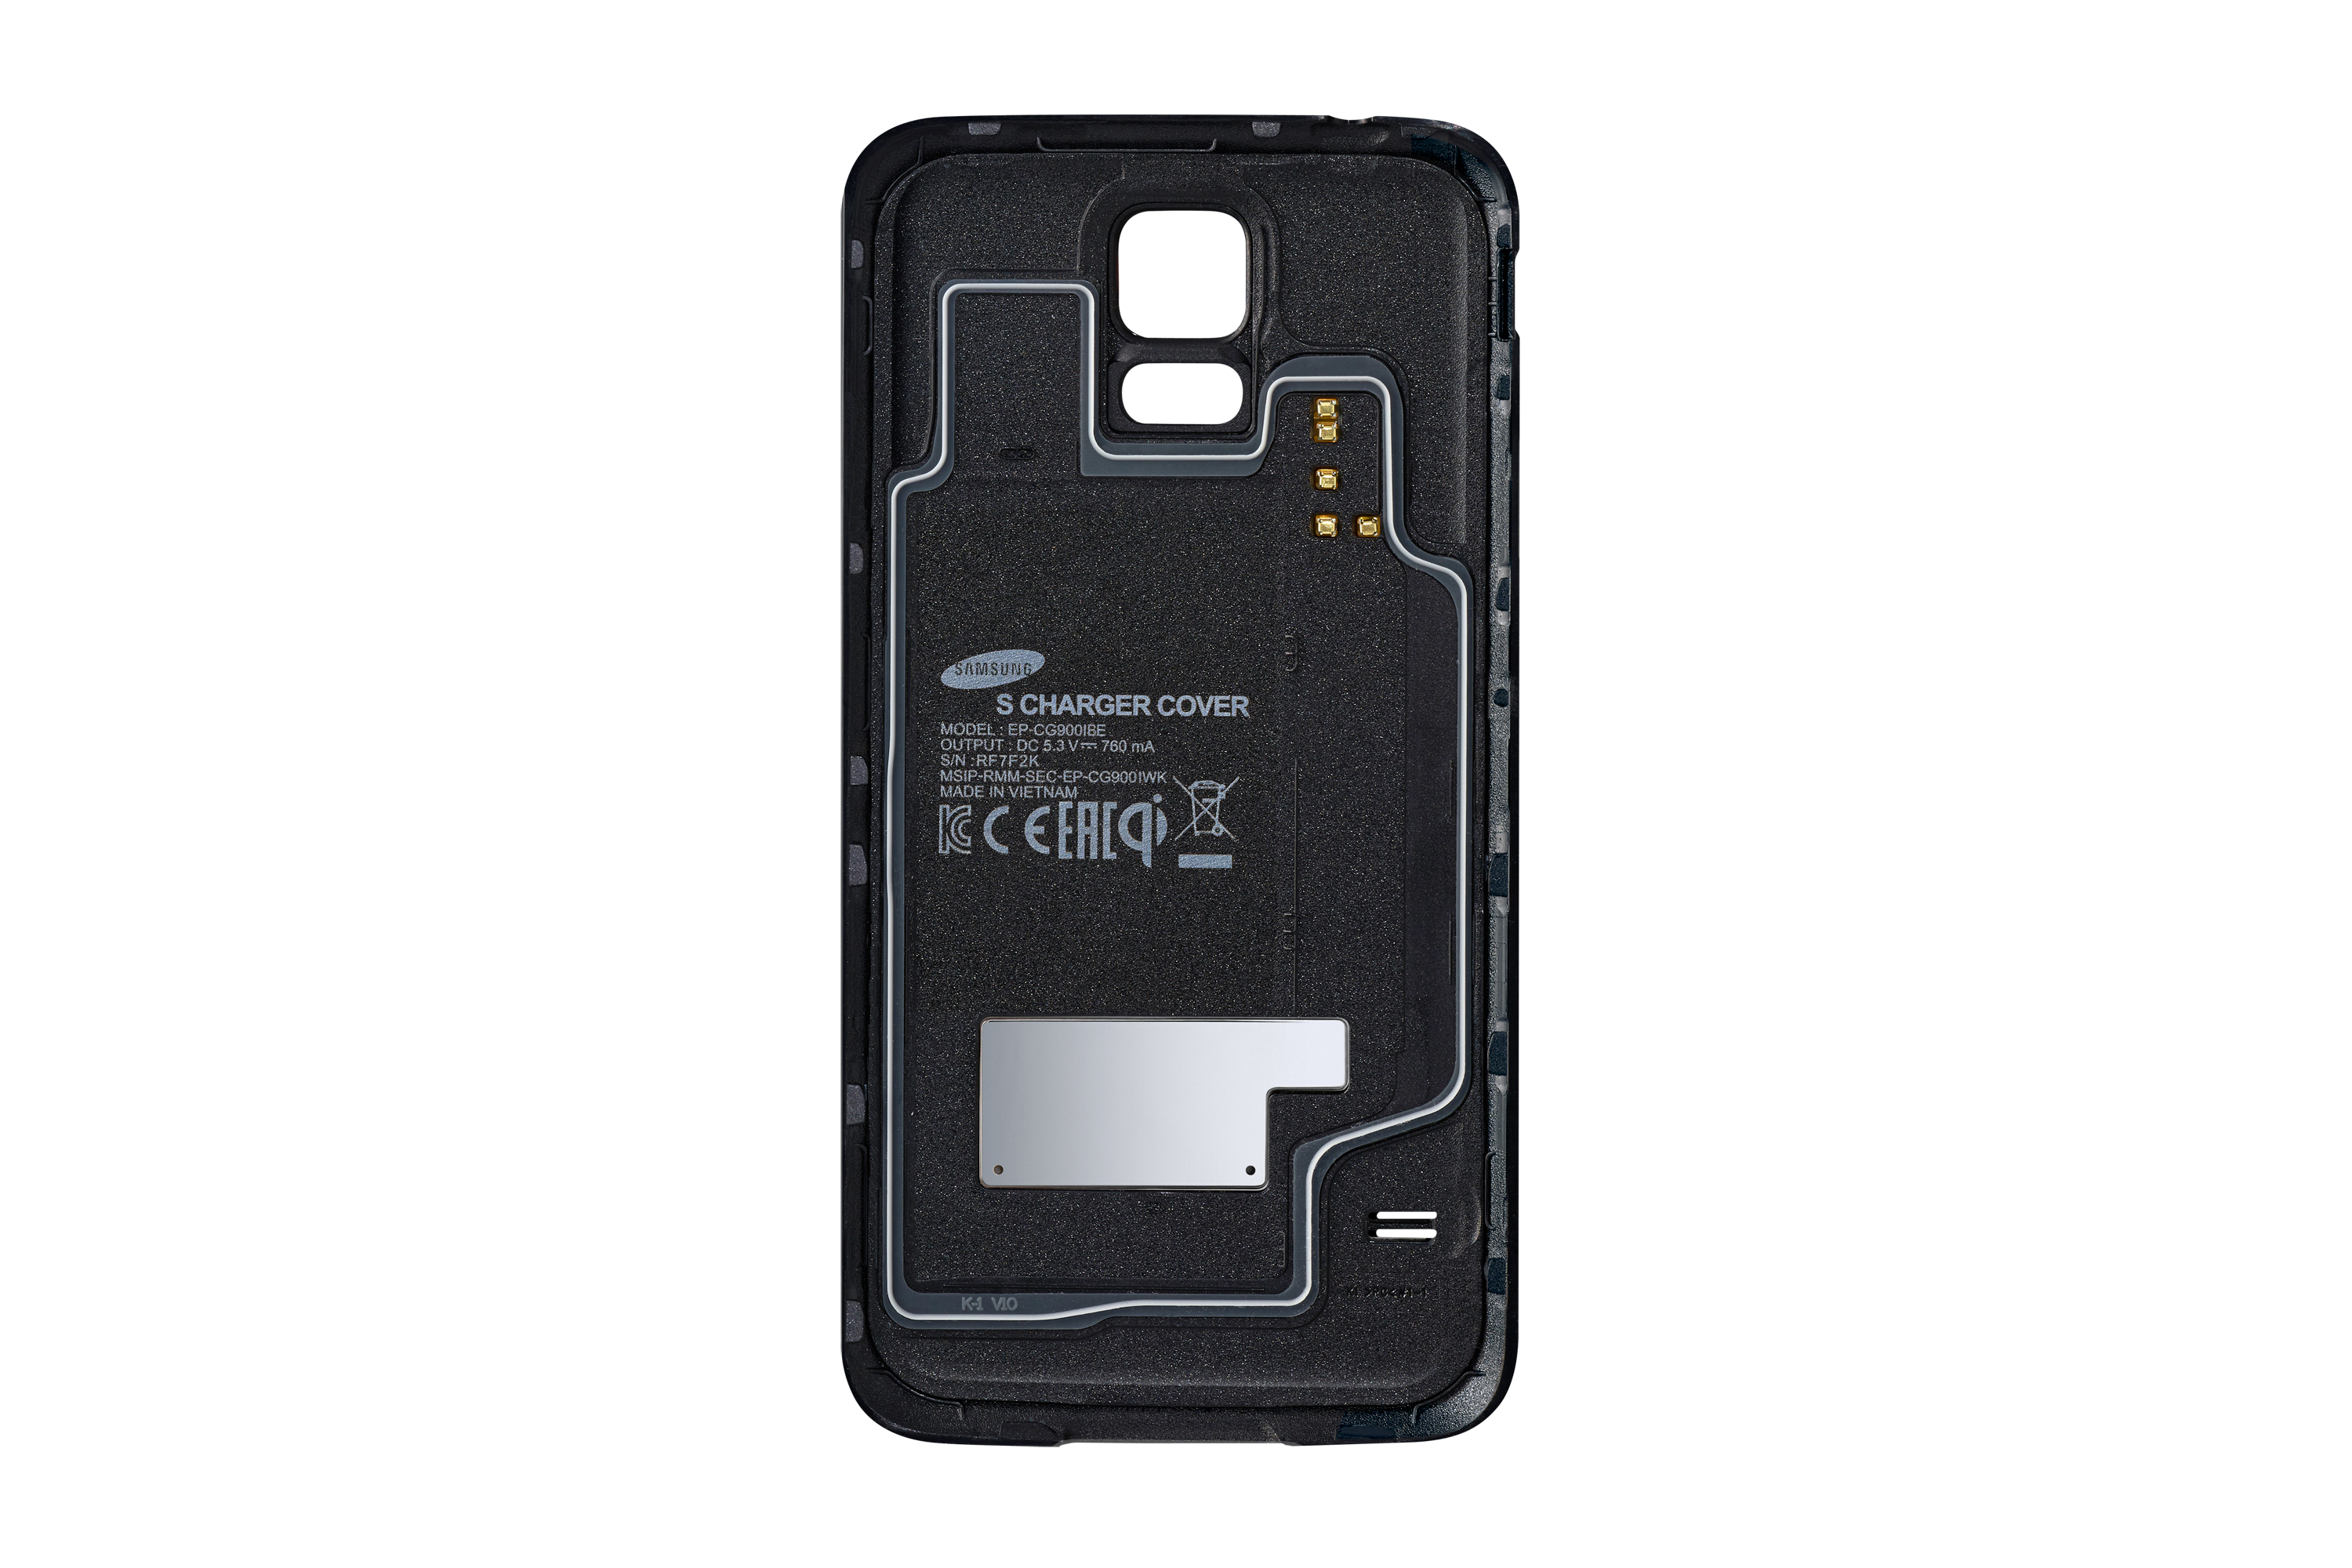 S Charger Cover Galaxy S5